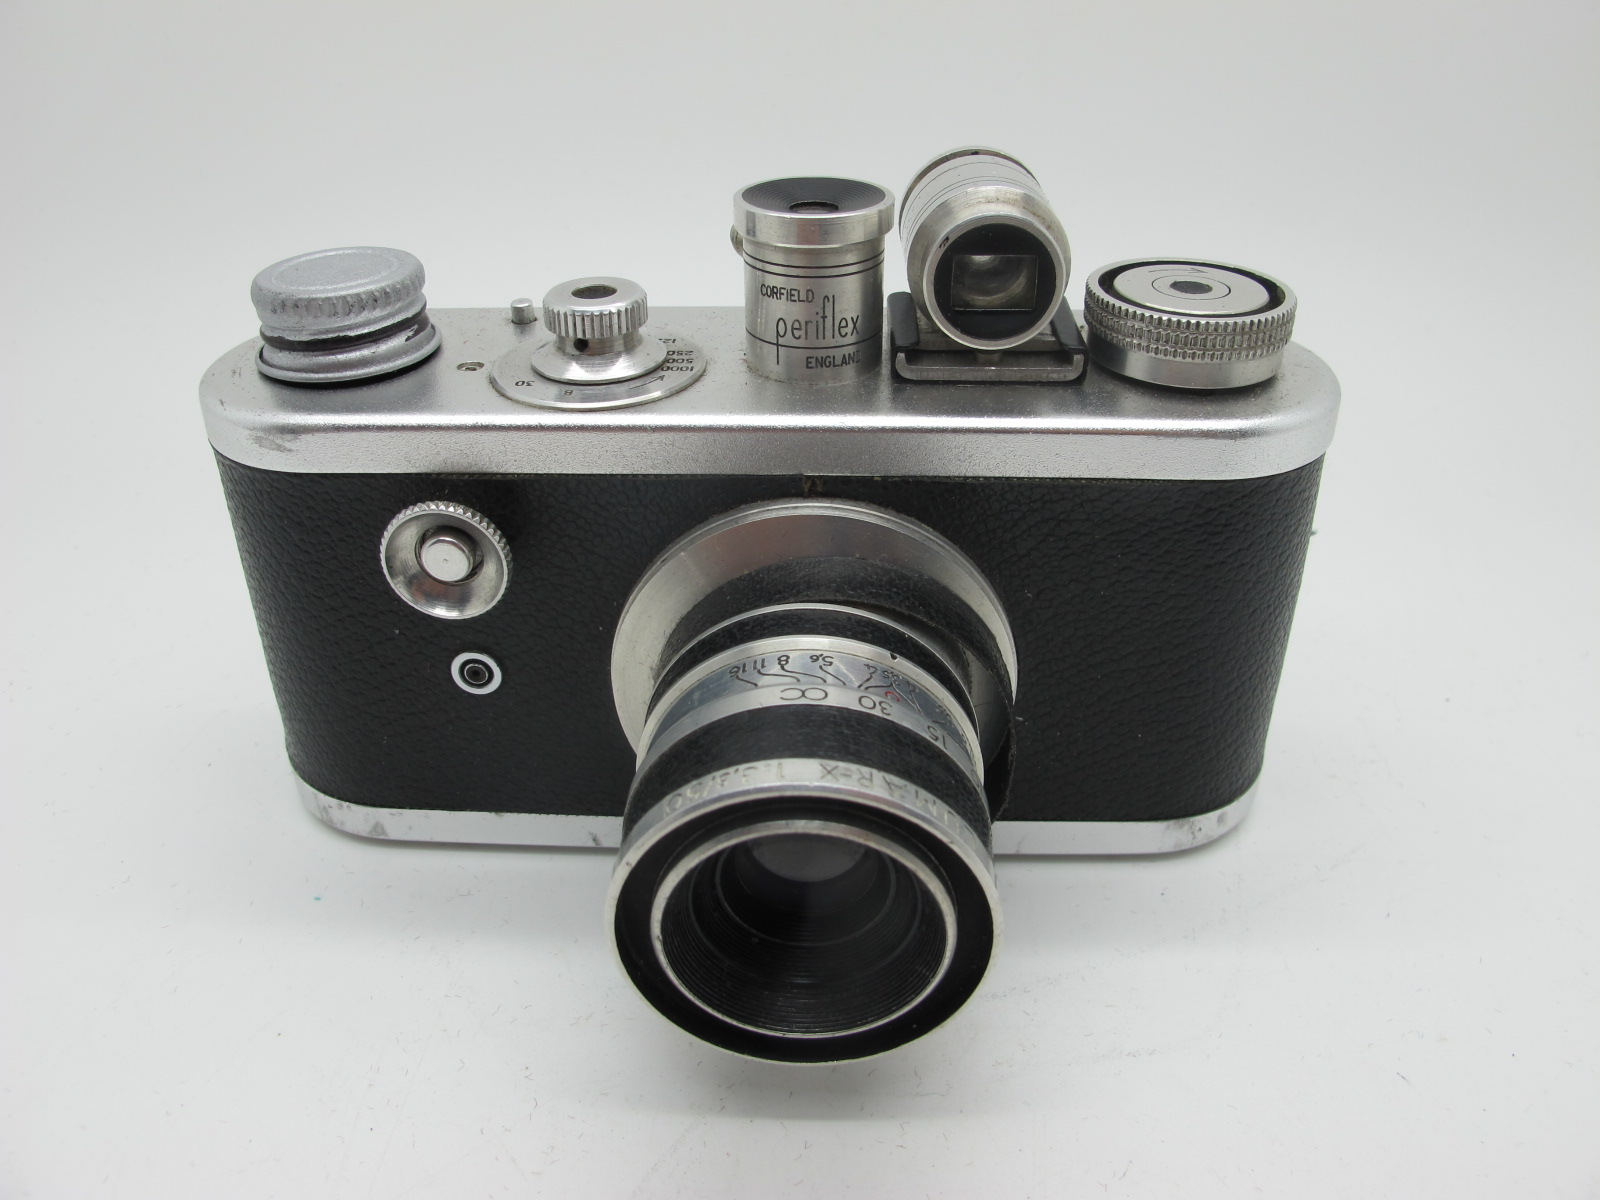 Saraber Goslar Finetta 88, Edika Flex, plus two other camera's in brown leather cases. (4) - Image 2 of 13